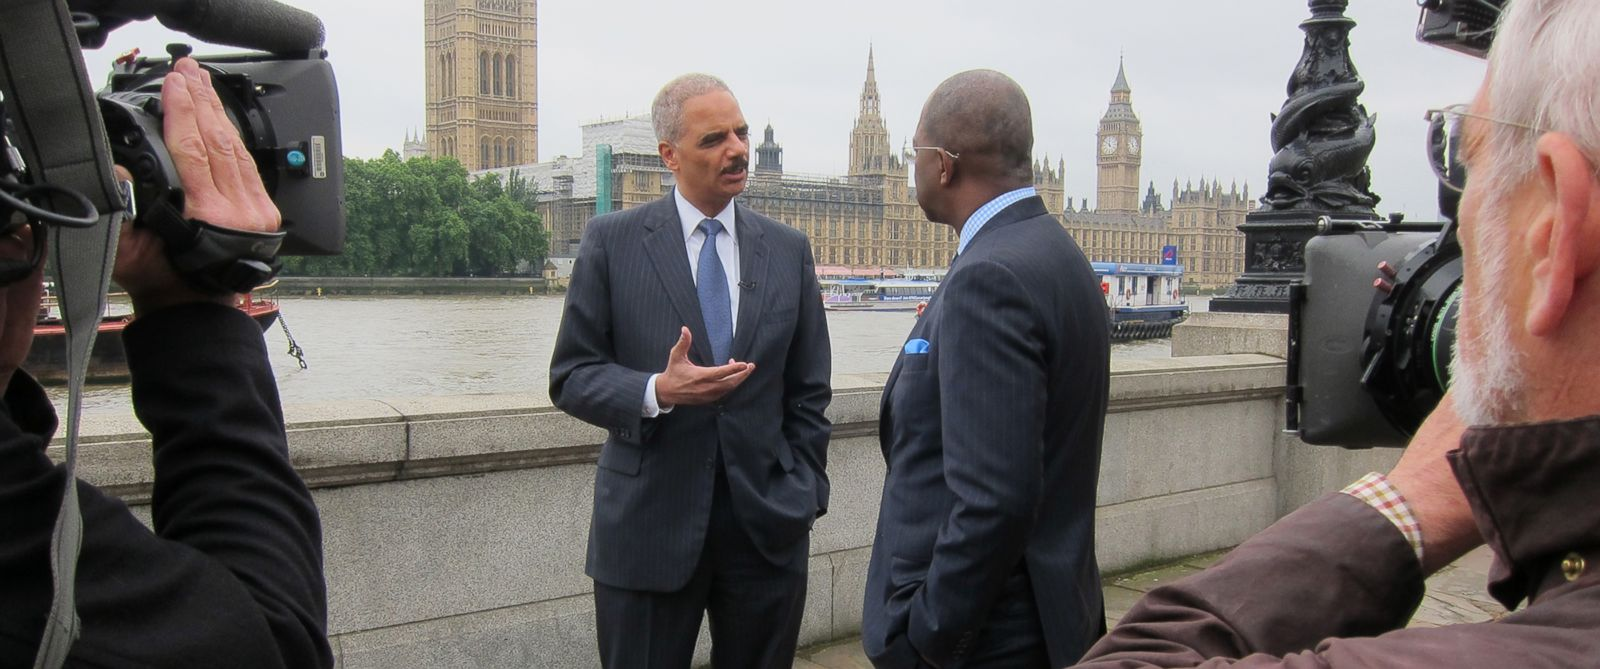 PHOTO: Pierre Thomas speaks with Attorney General Eric Holder in London on Friday, July 11th, 2014.